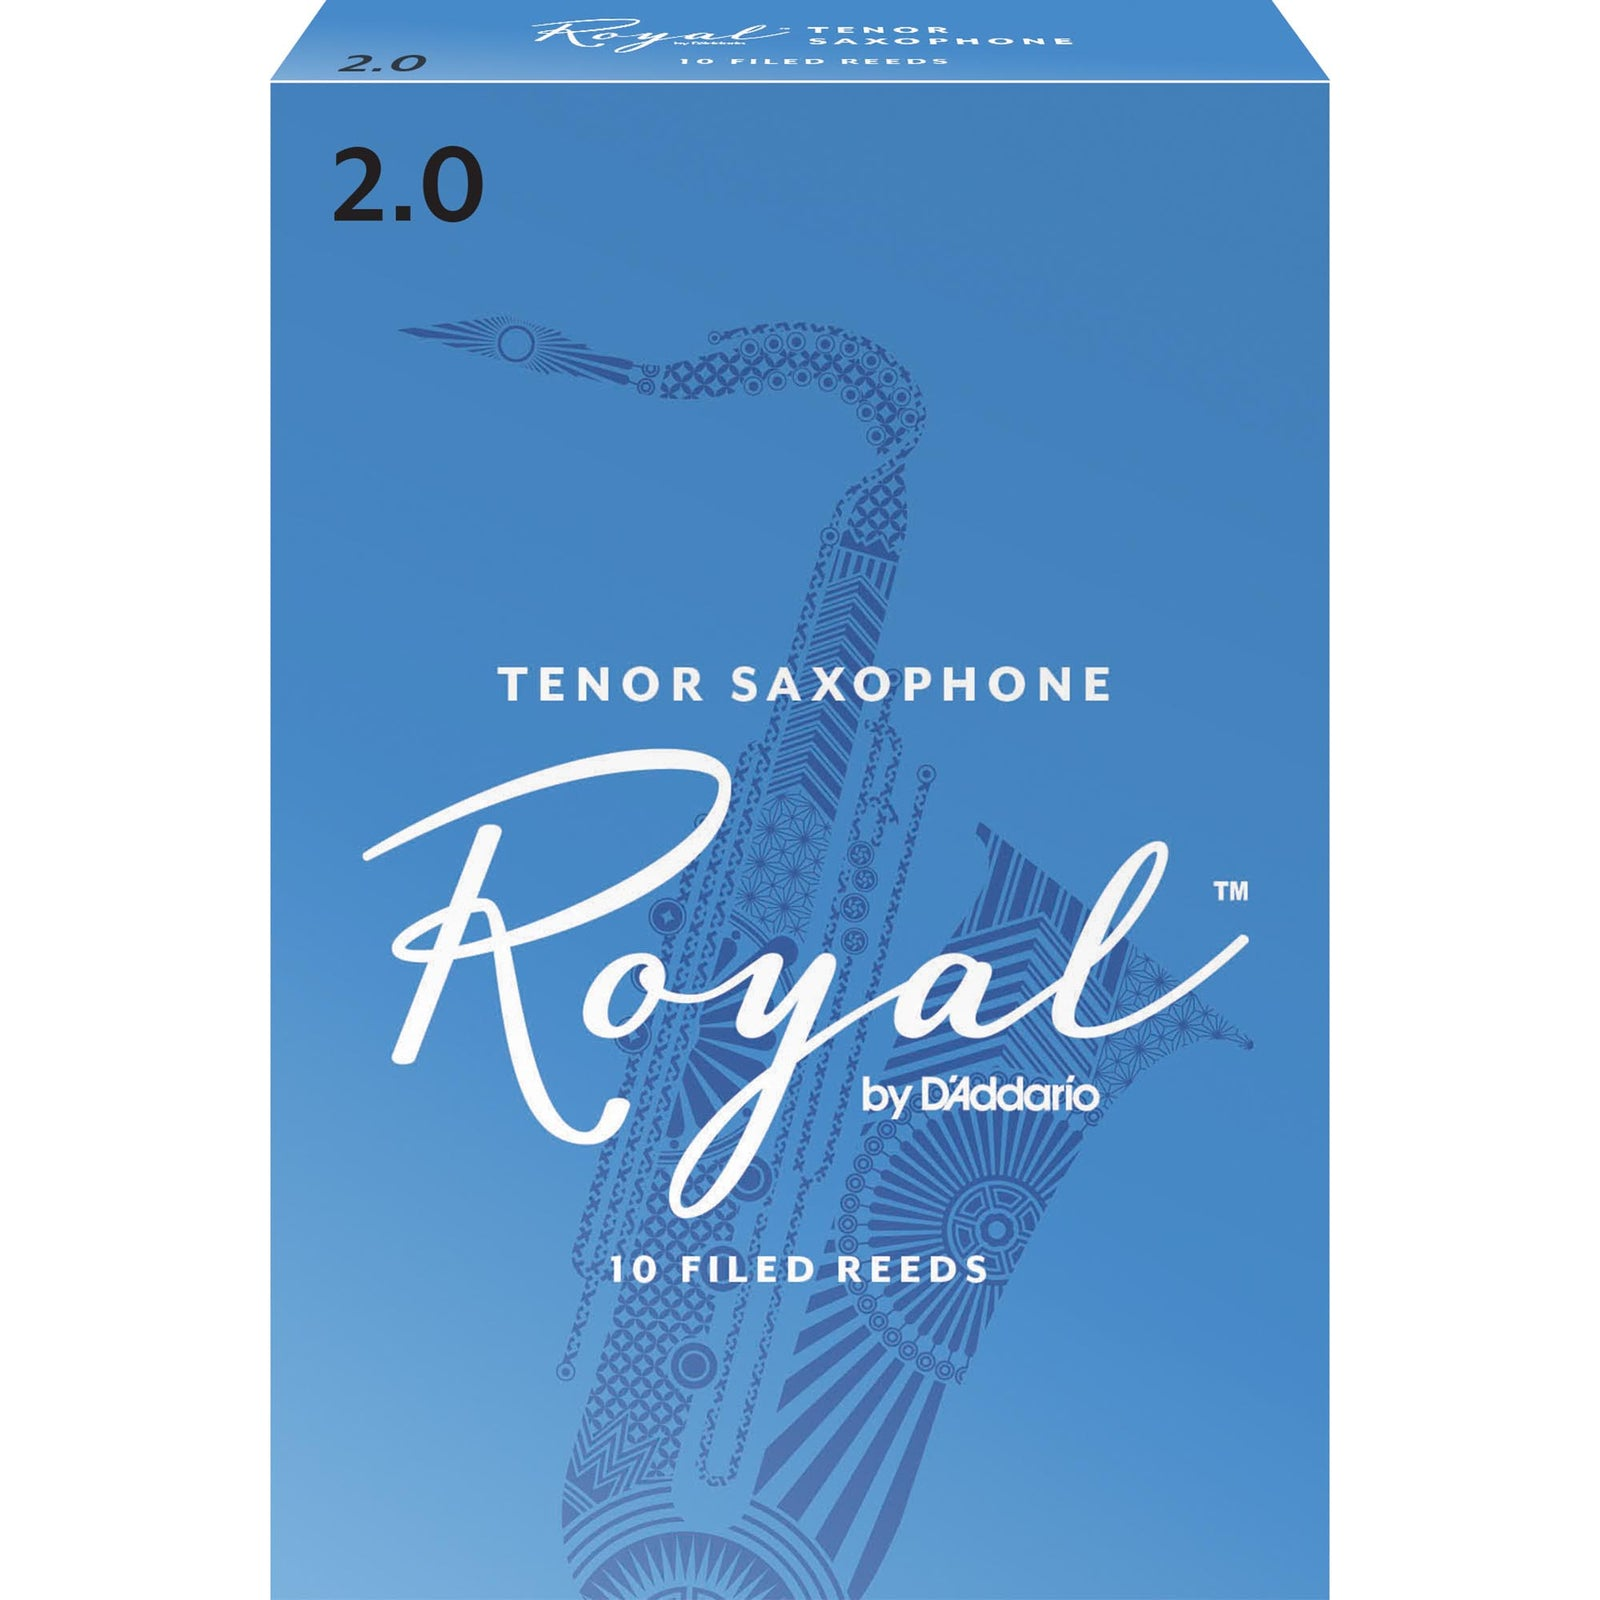 Royal by D'addario Tenor Saxophone Reeds (10 Box)